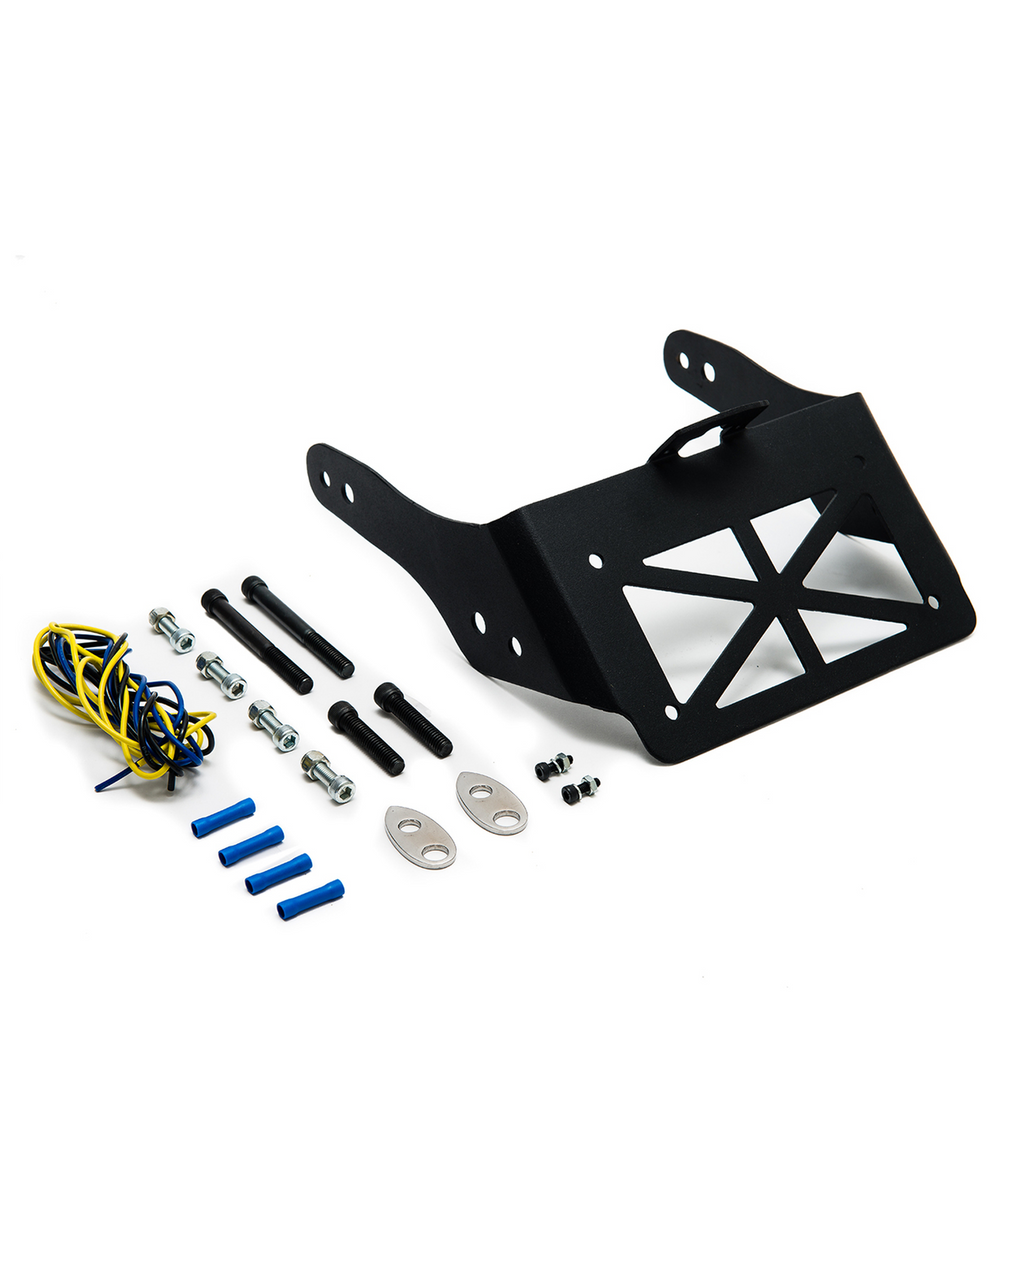 Dyna Licence Plate and  Kit with Nets and Bolts